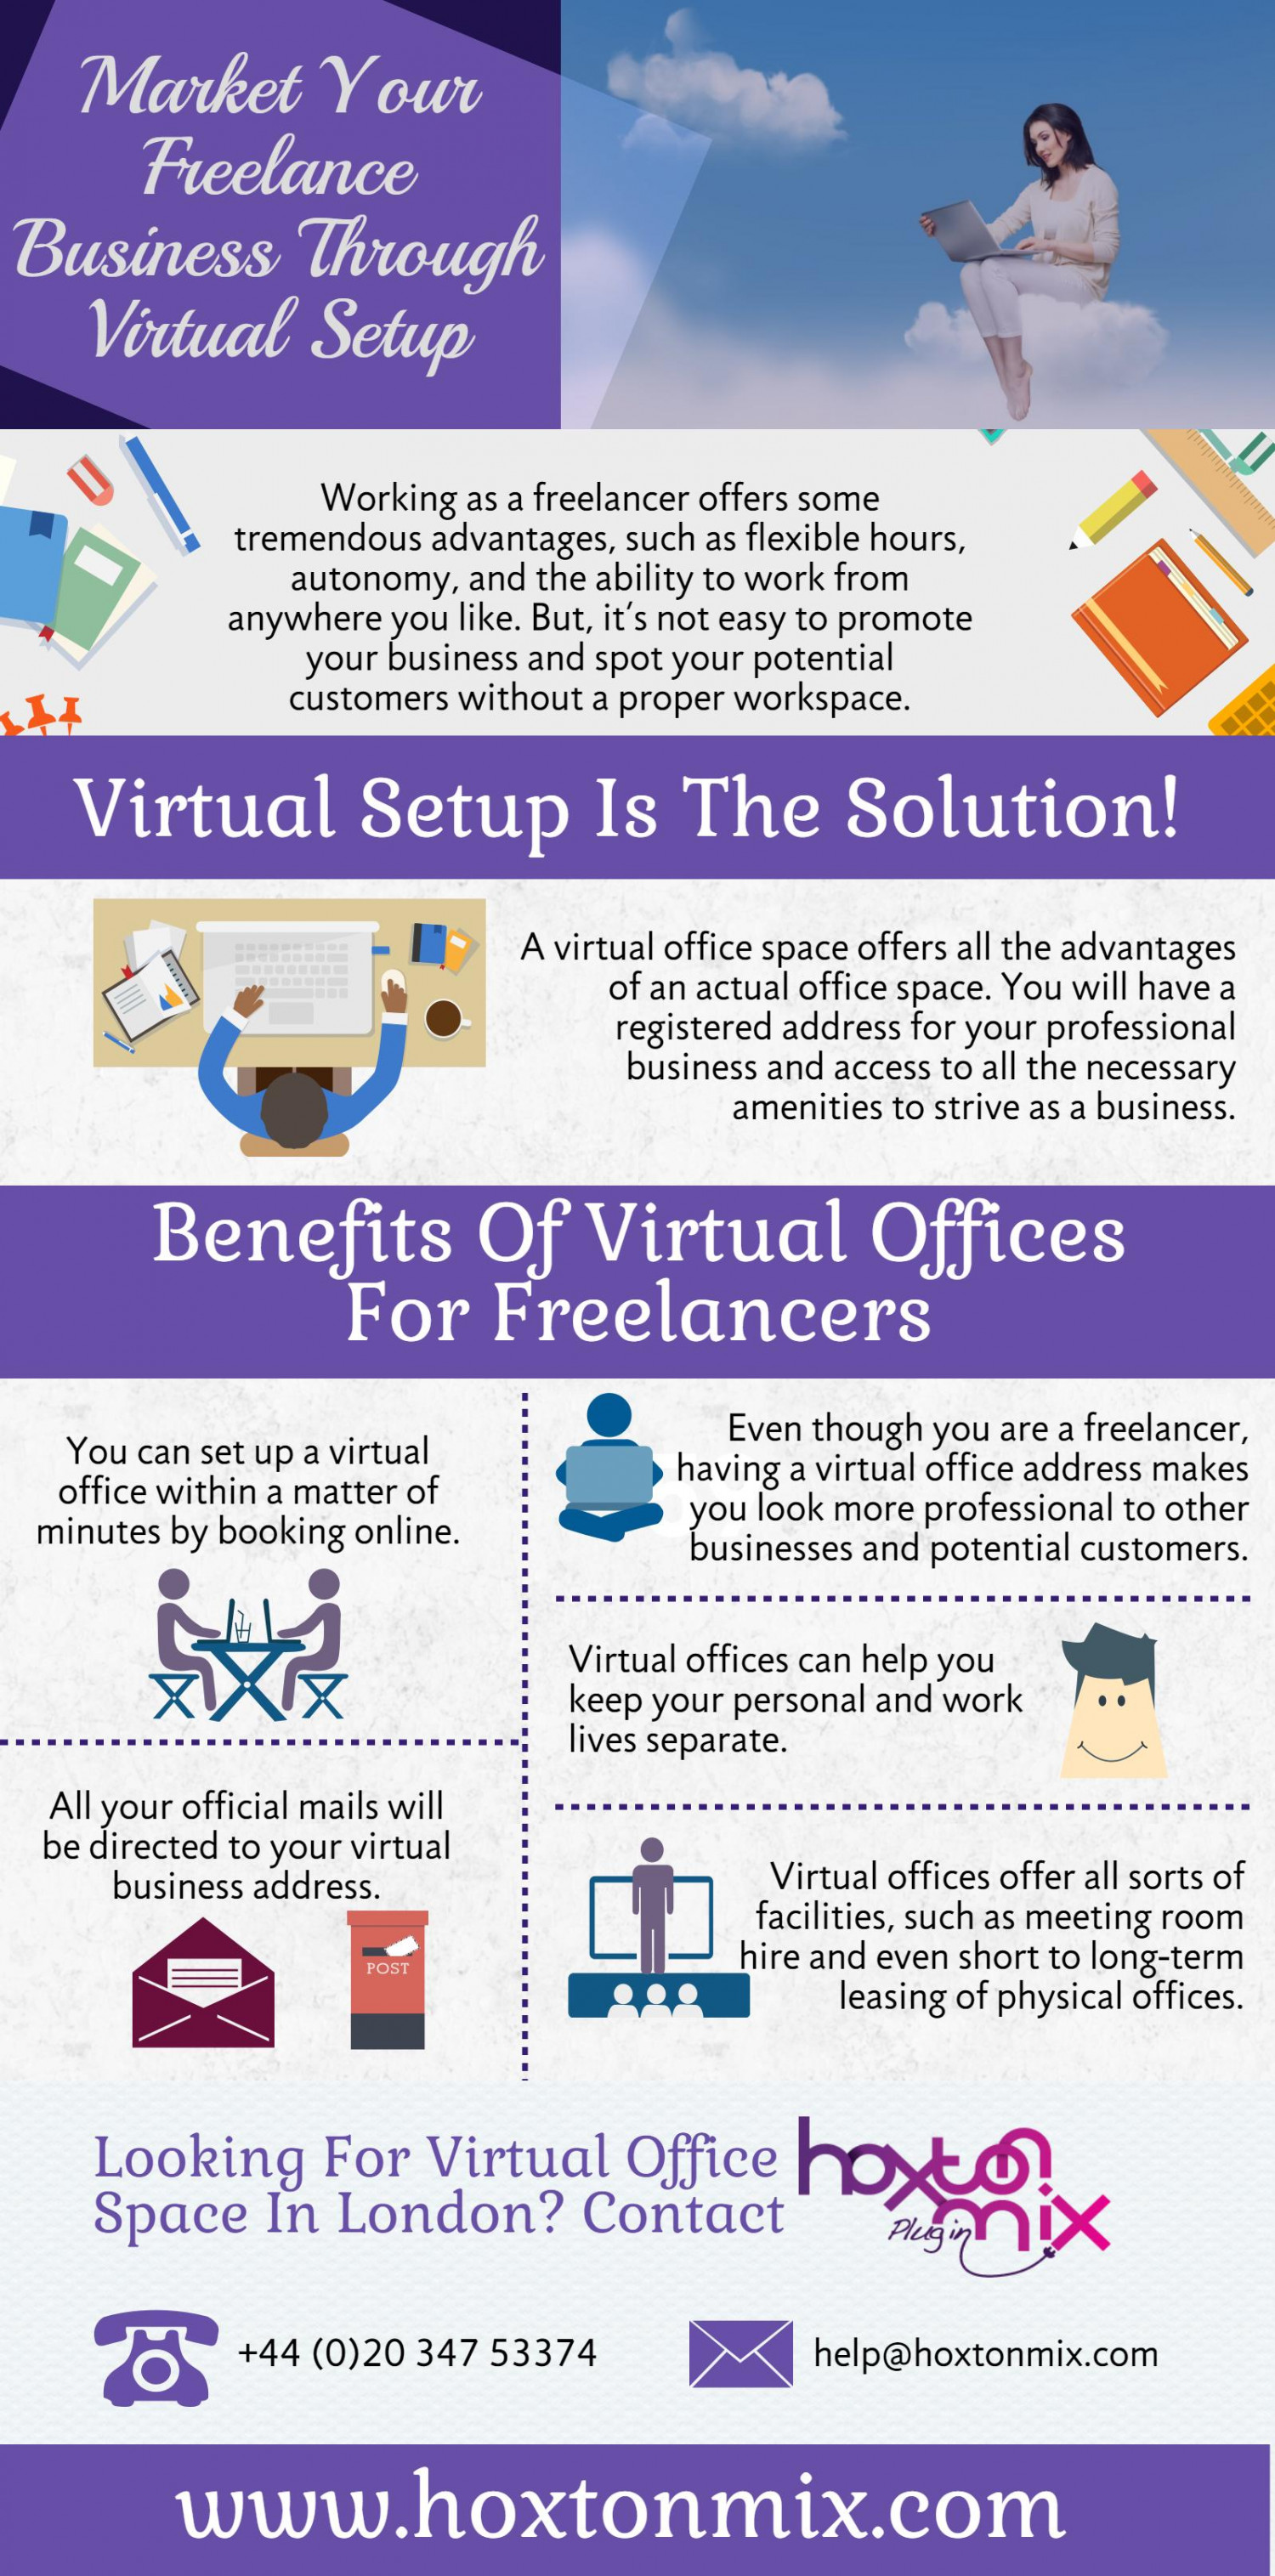 virtual assistant virtual office support hoxtonmix com visual ly